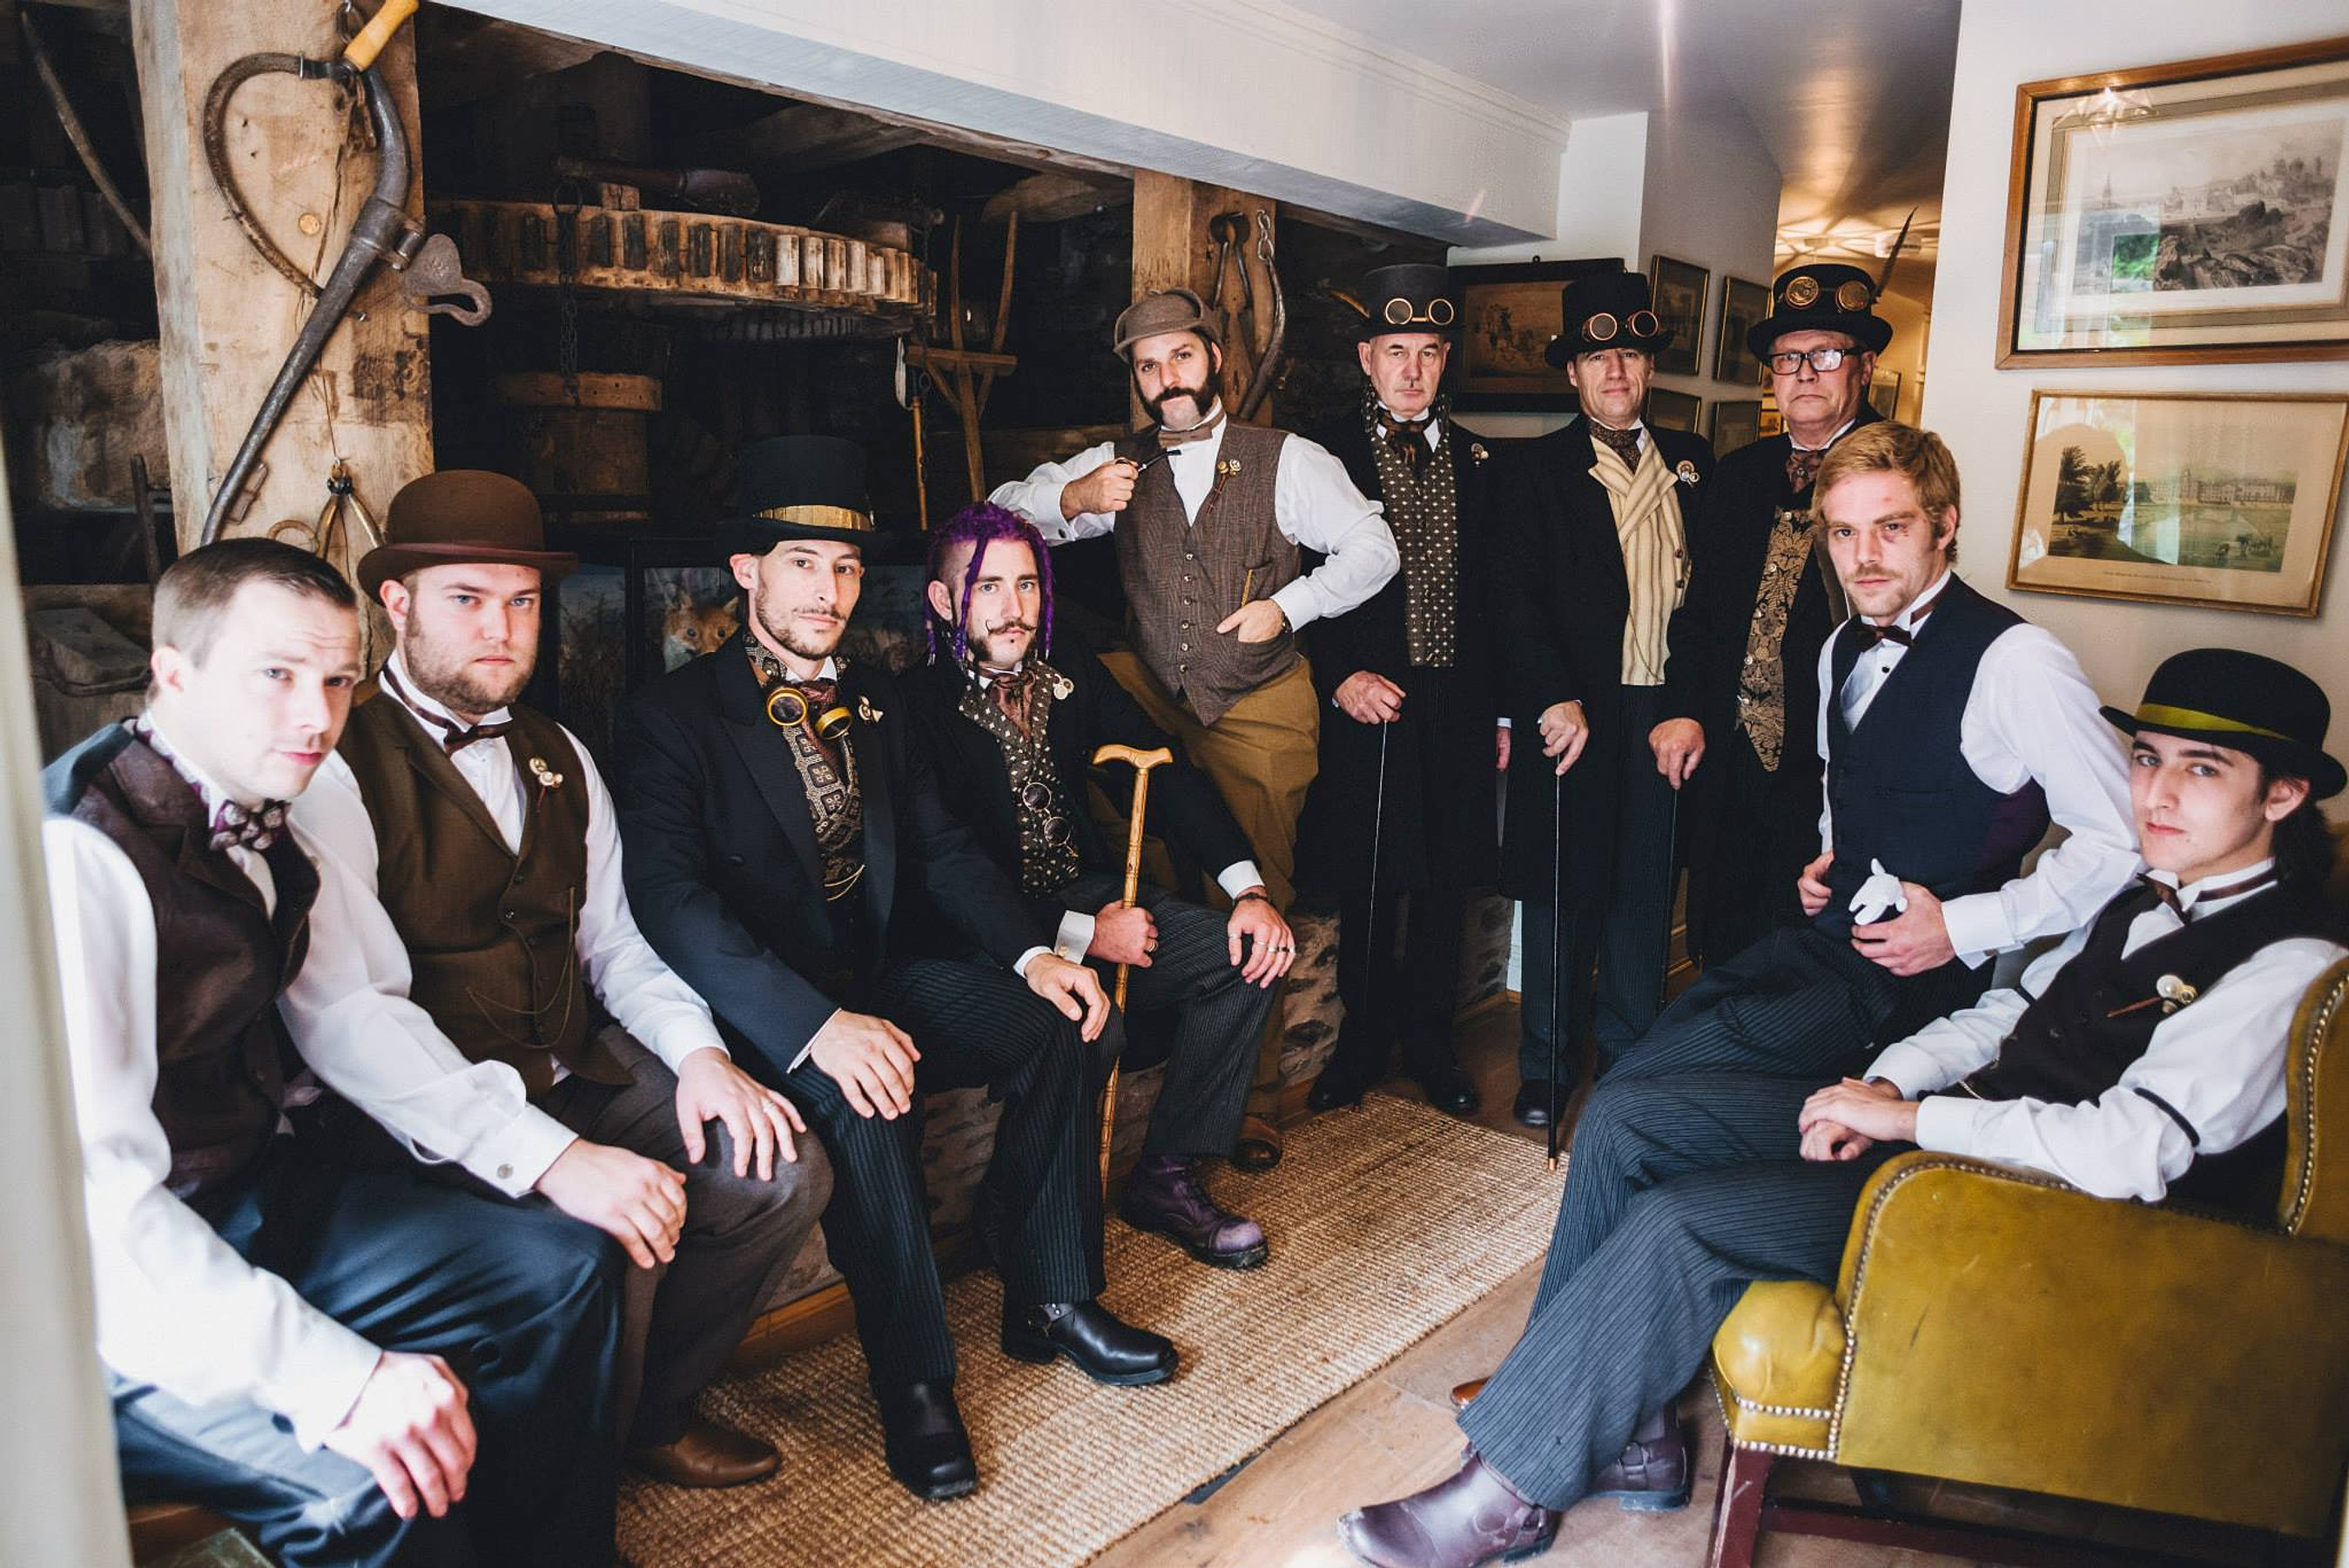 Bath Theatrical Costume Hire / Period themed Wedding photo gallery /